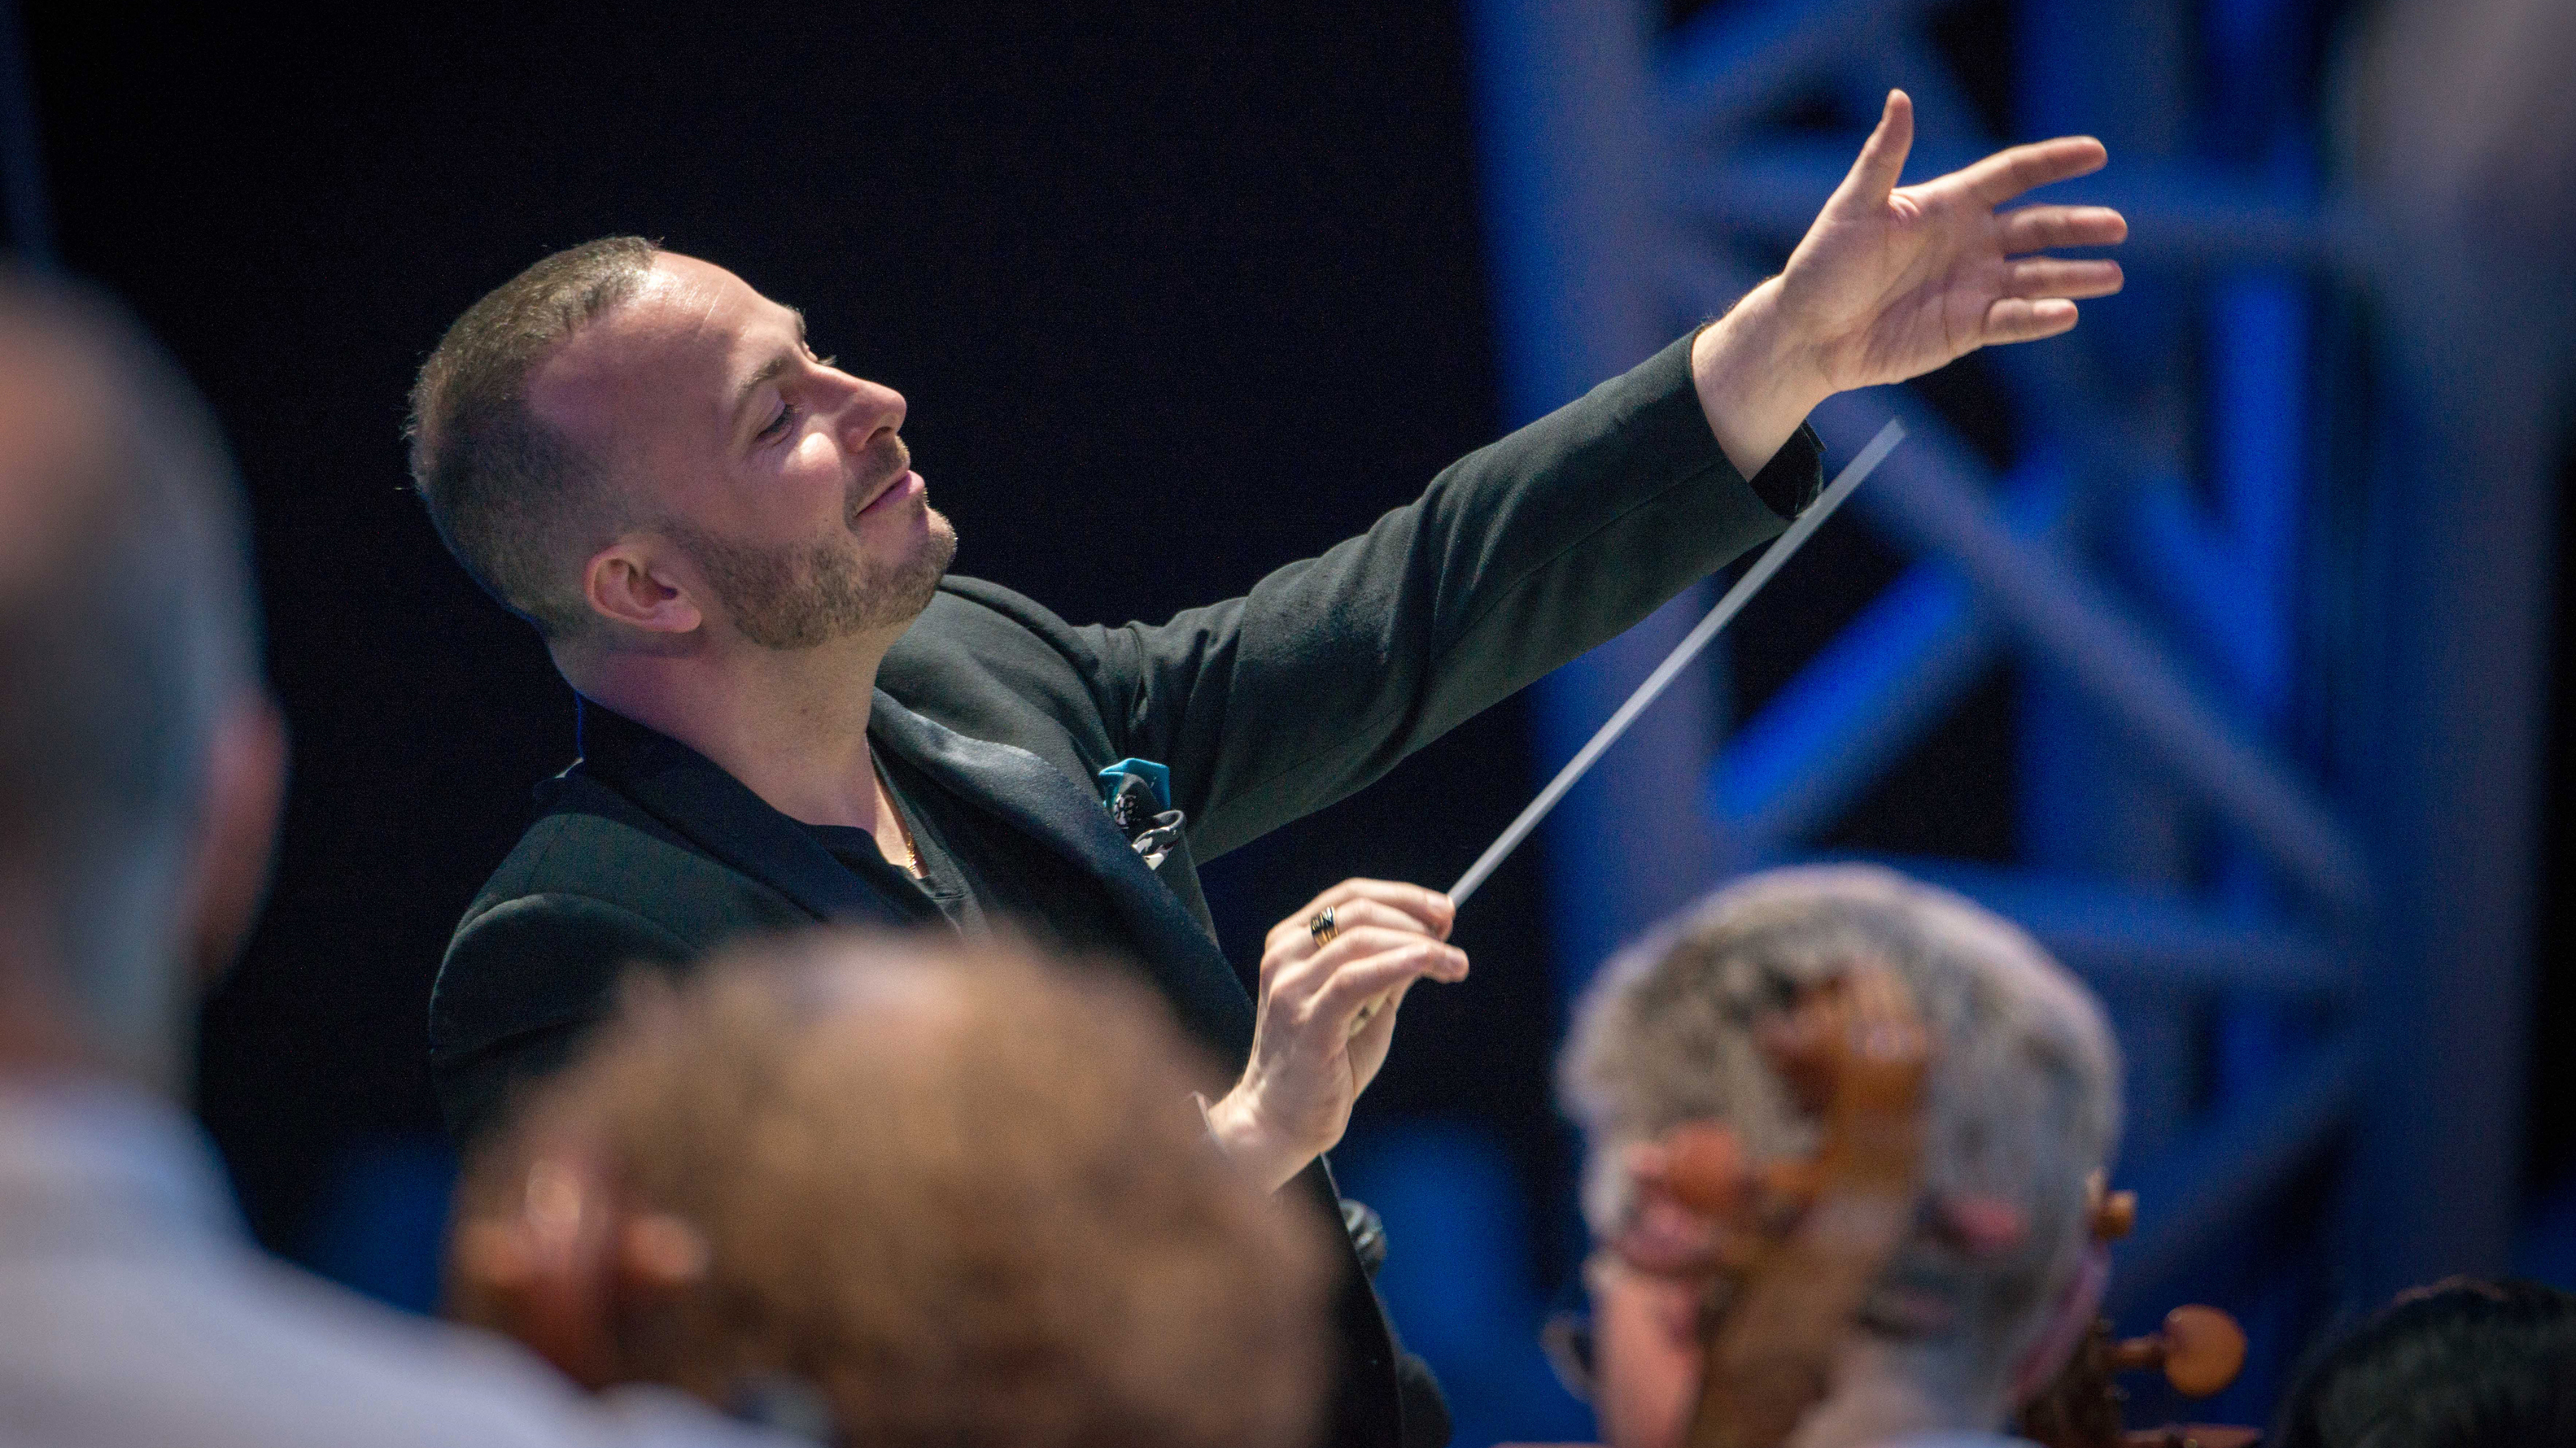 For Conductor Yannick Nézet-Séguin, Making Music Is 'Like A Religious Call'